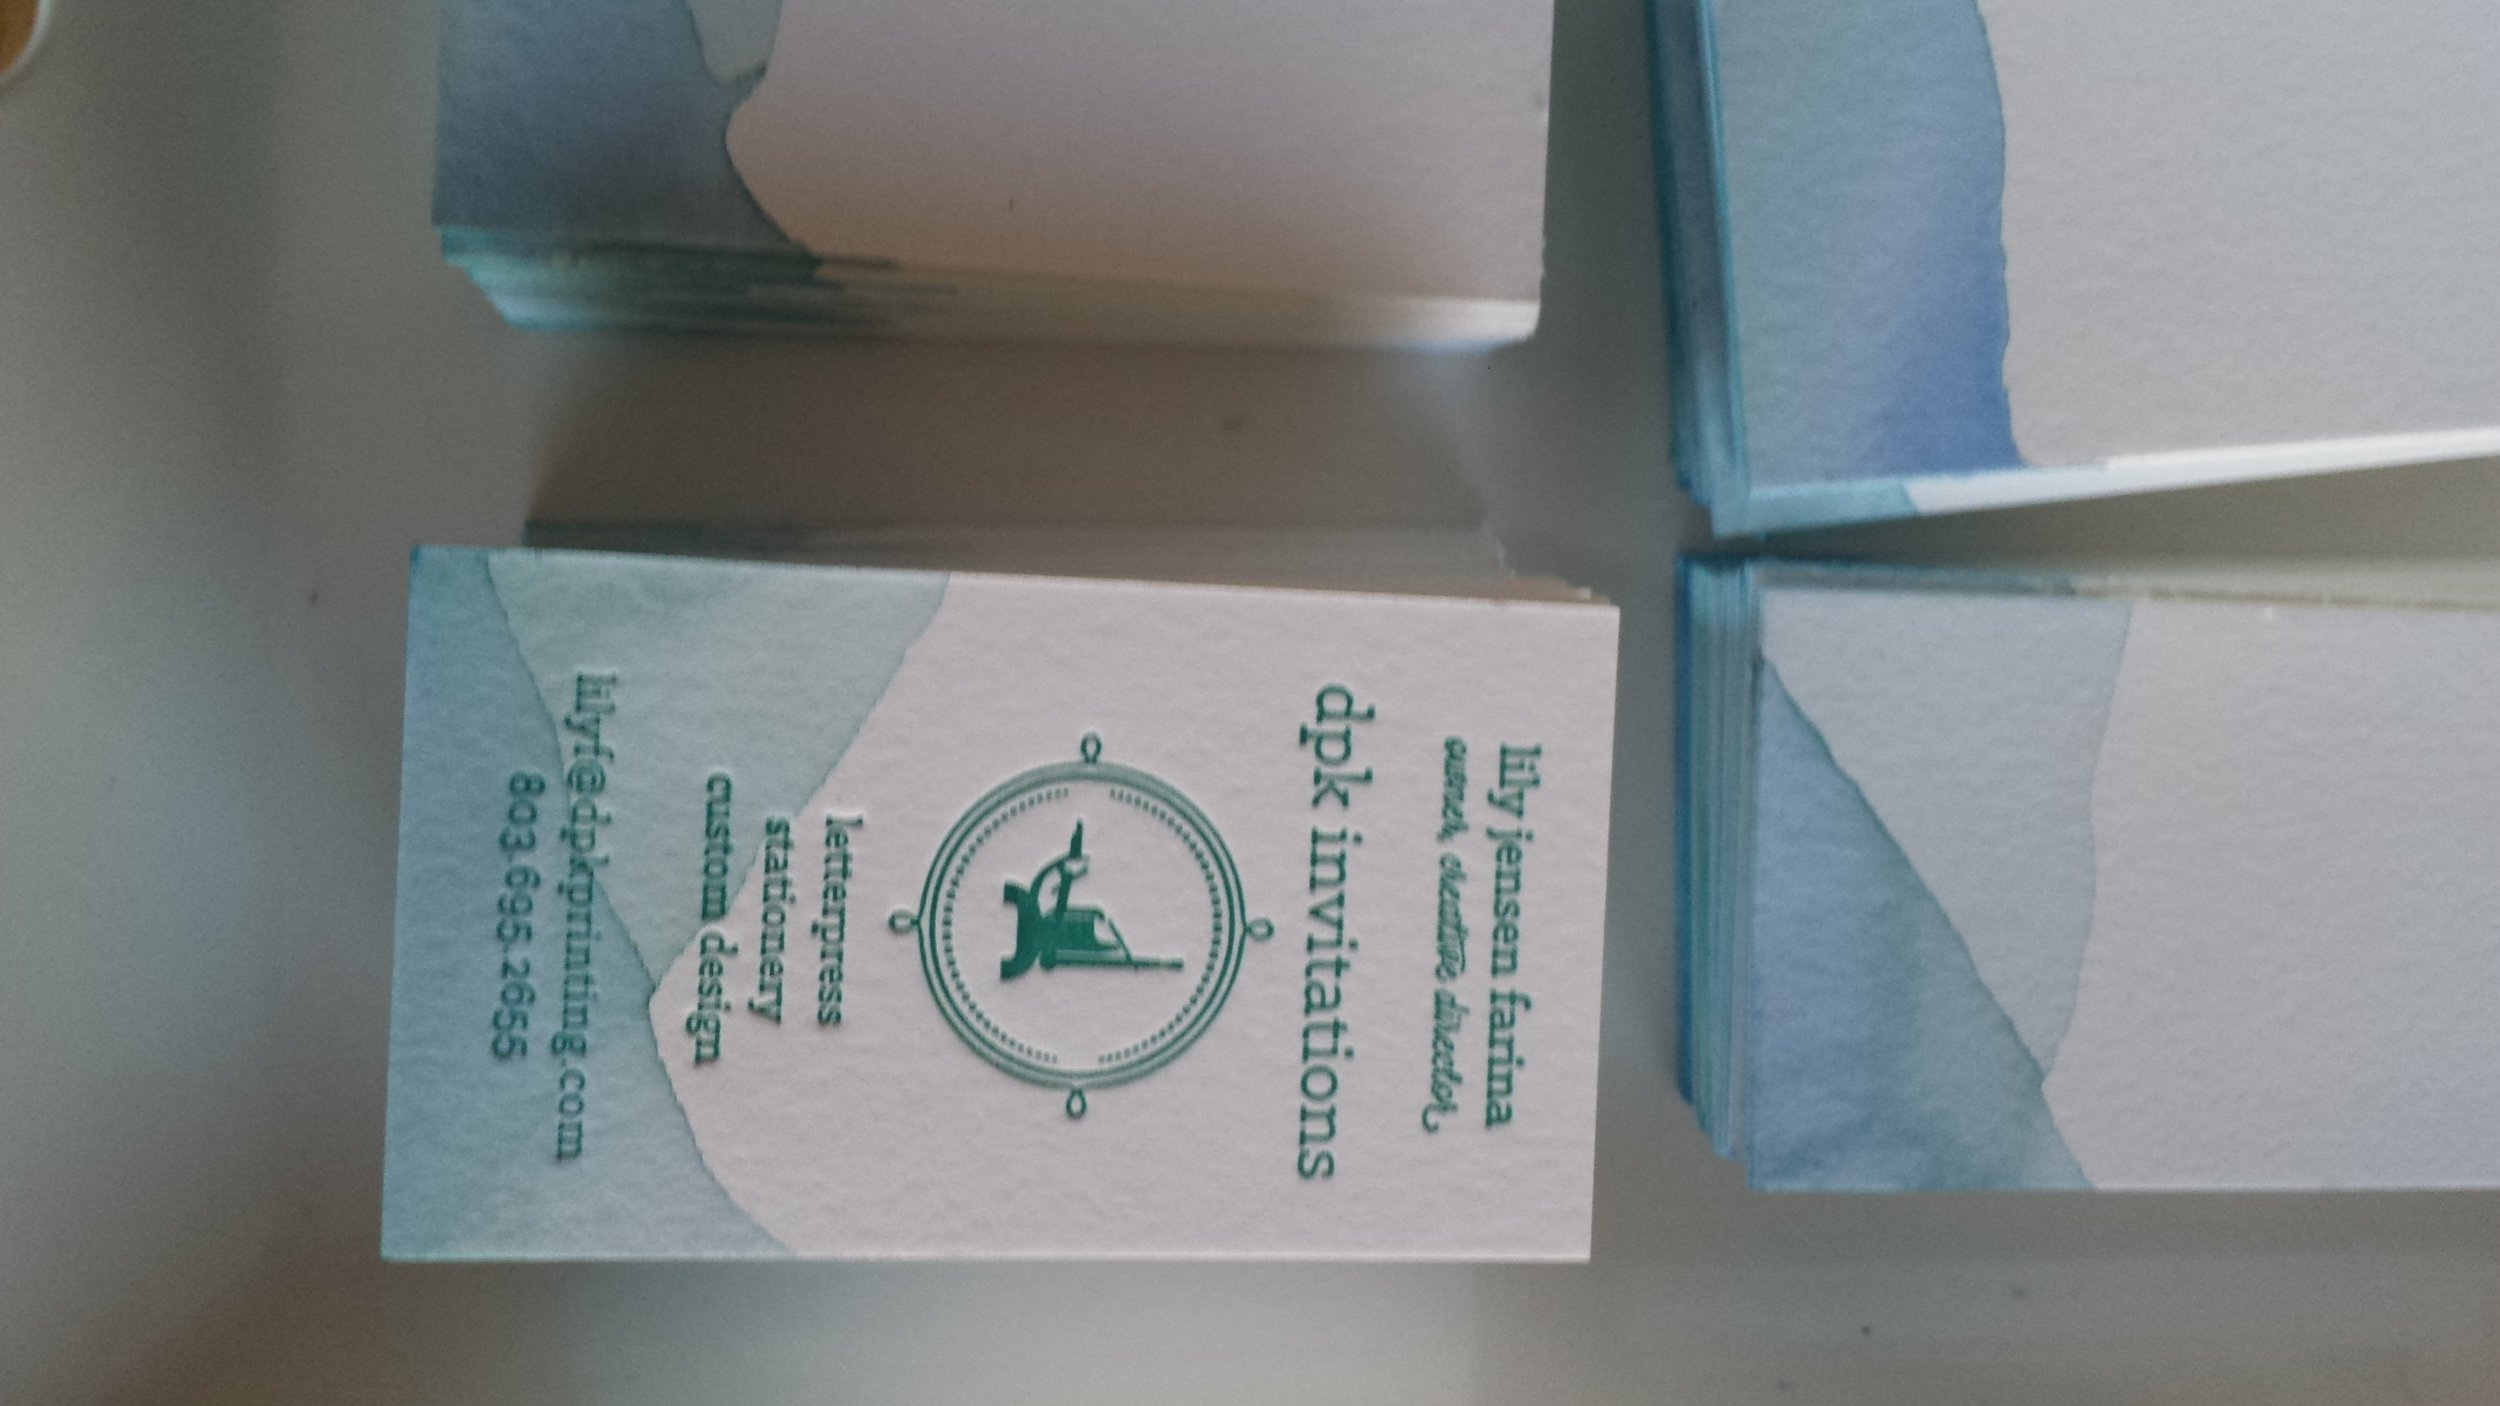 DPK Invitations, Hand-Dipped Business Card, letterpress printed on Crane's Lettra 220# DTC in Flourescent White